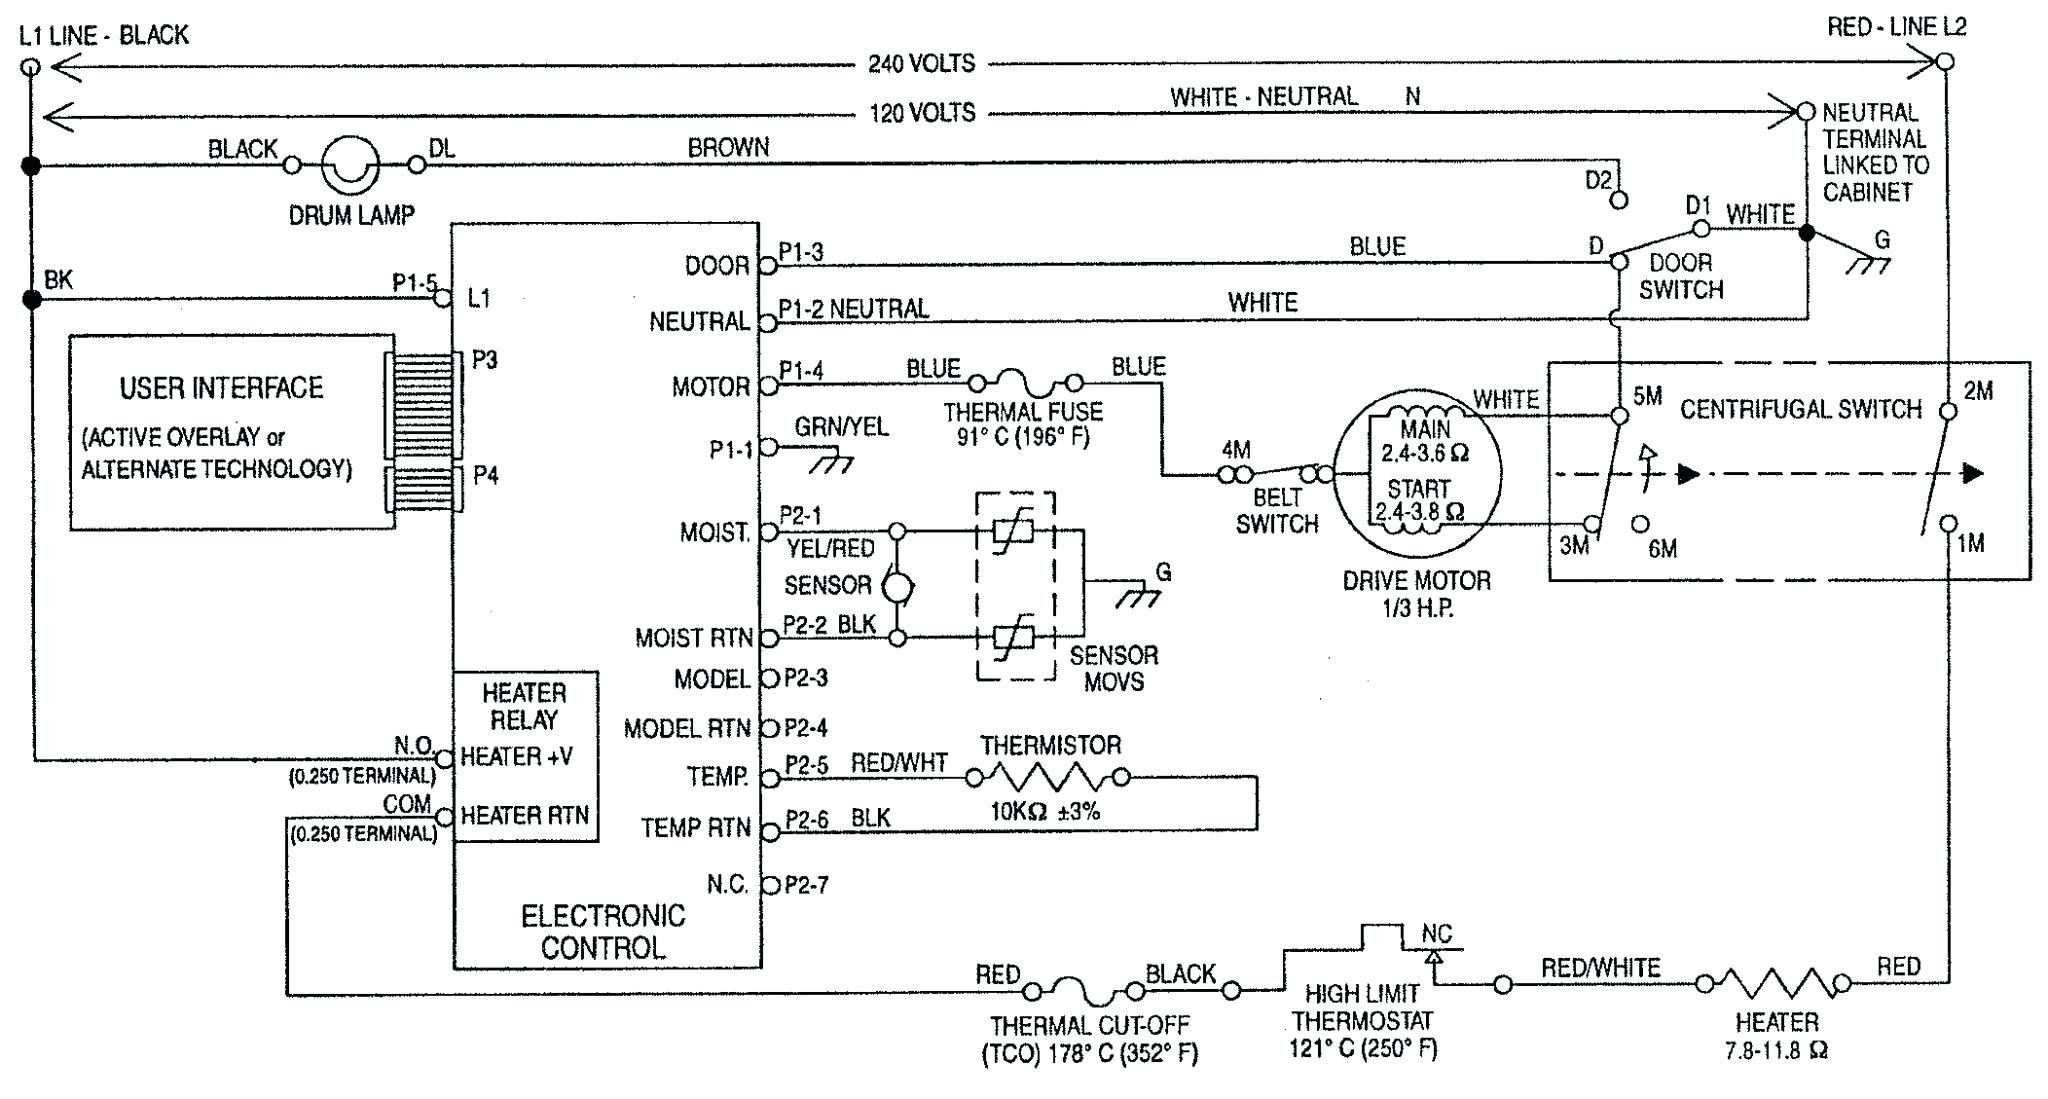 Ge Dryer Wiring Diagram Timer Electric Free Download Car Profile inside Ge Electric Dryer Wiring Diagram